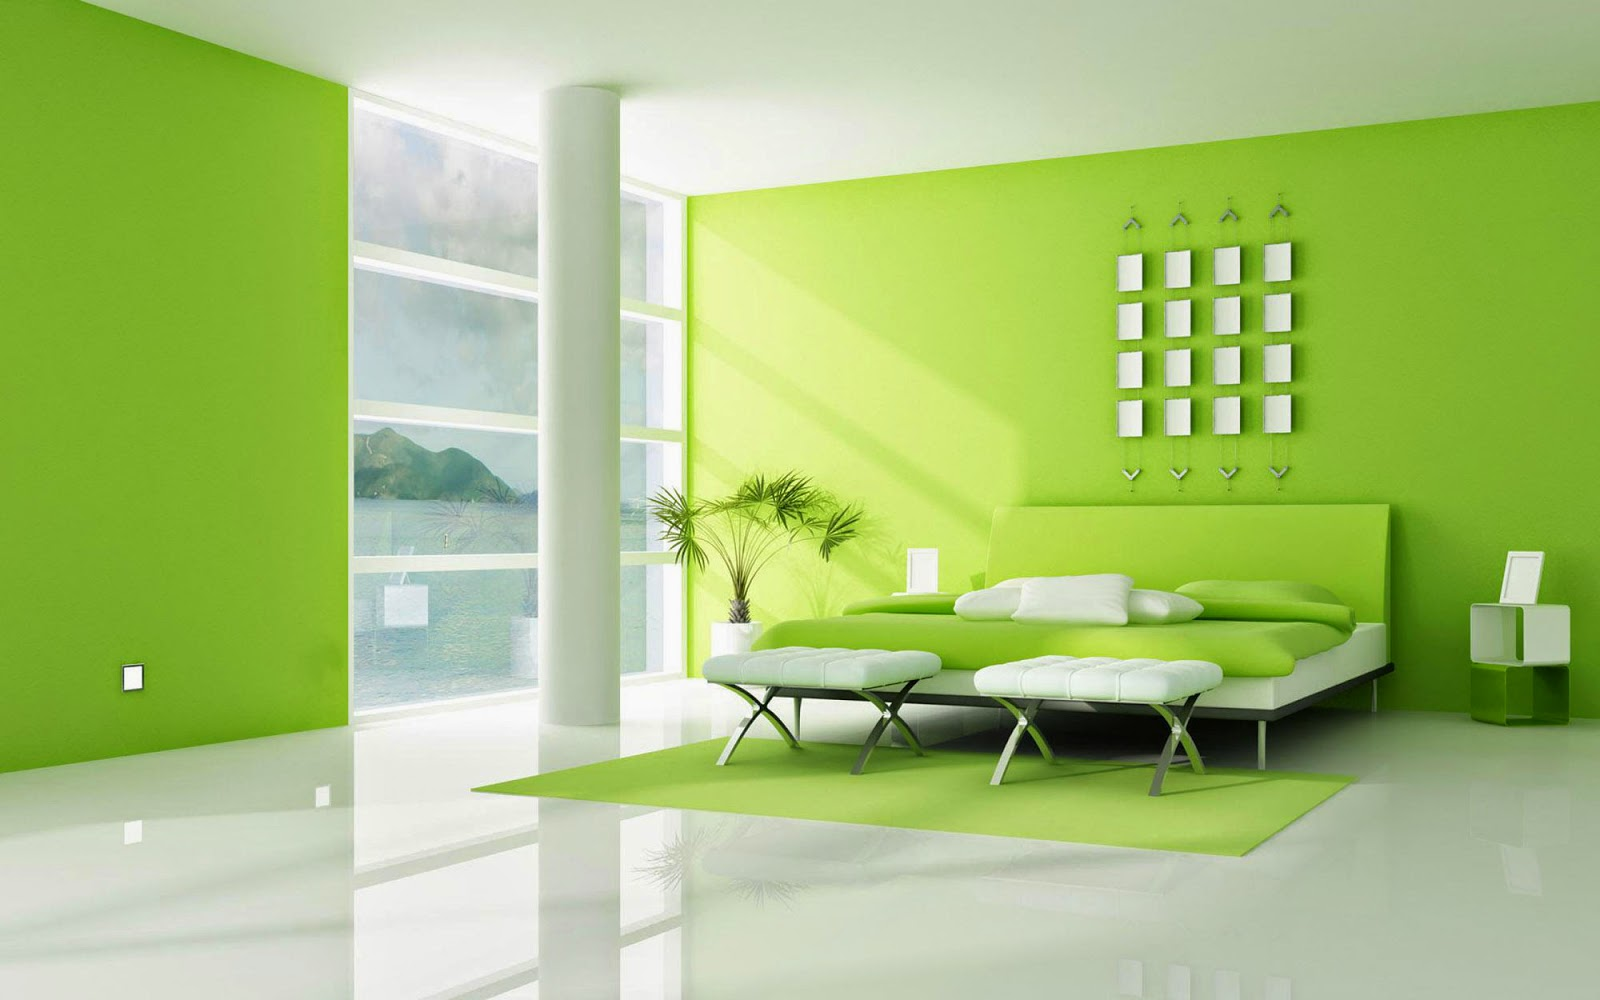 How To Choose A Paint Color designing home: choosing paint colors minimalist house blend